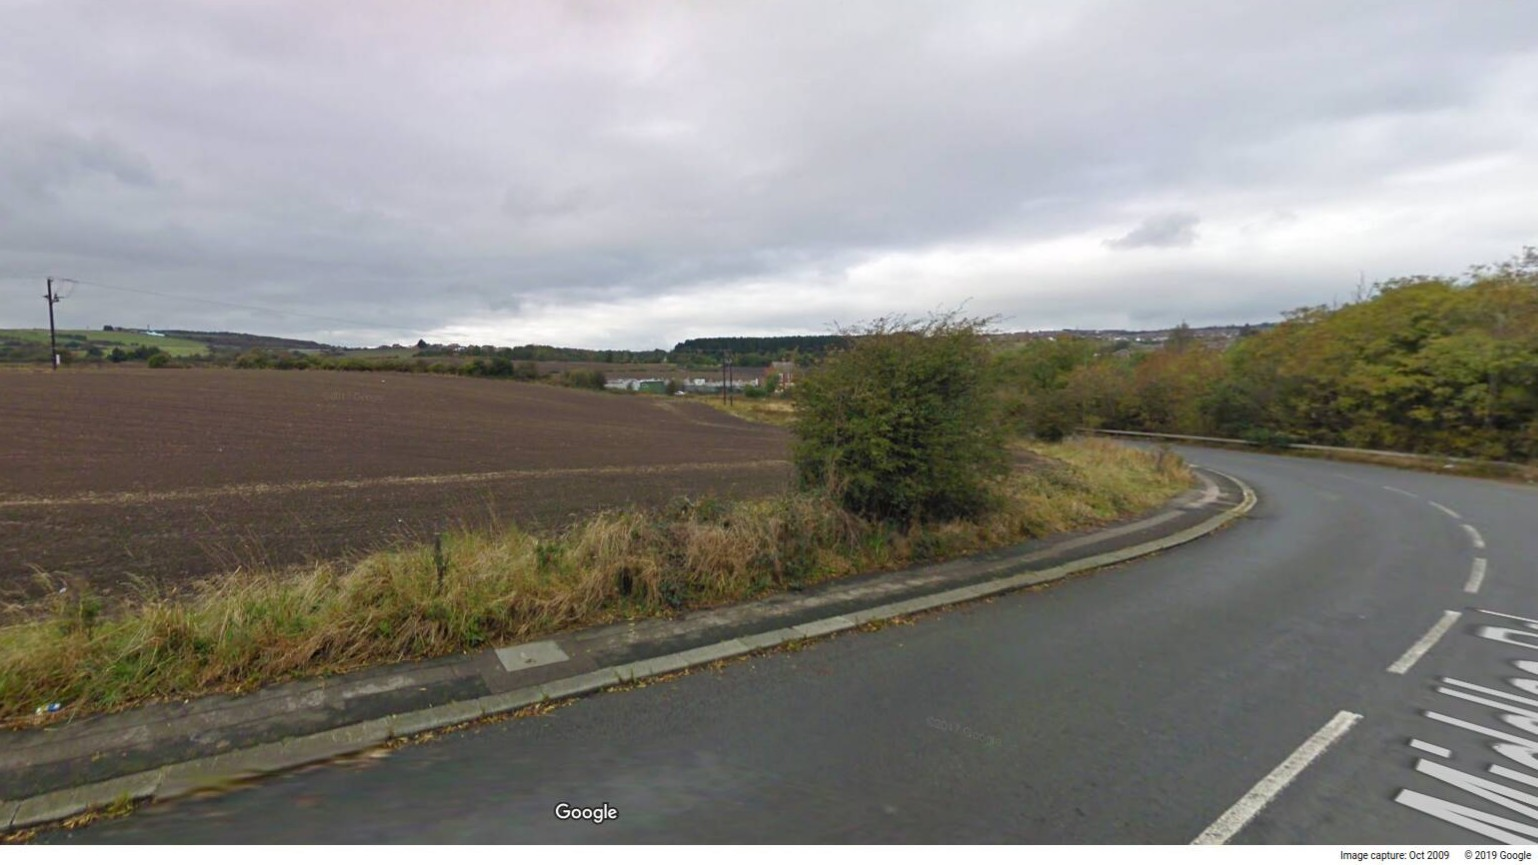 The application to build 290 houses in Hustledown Road were refused